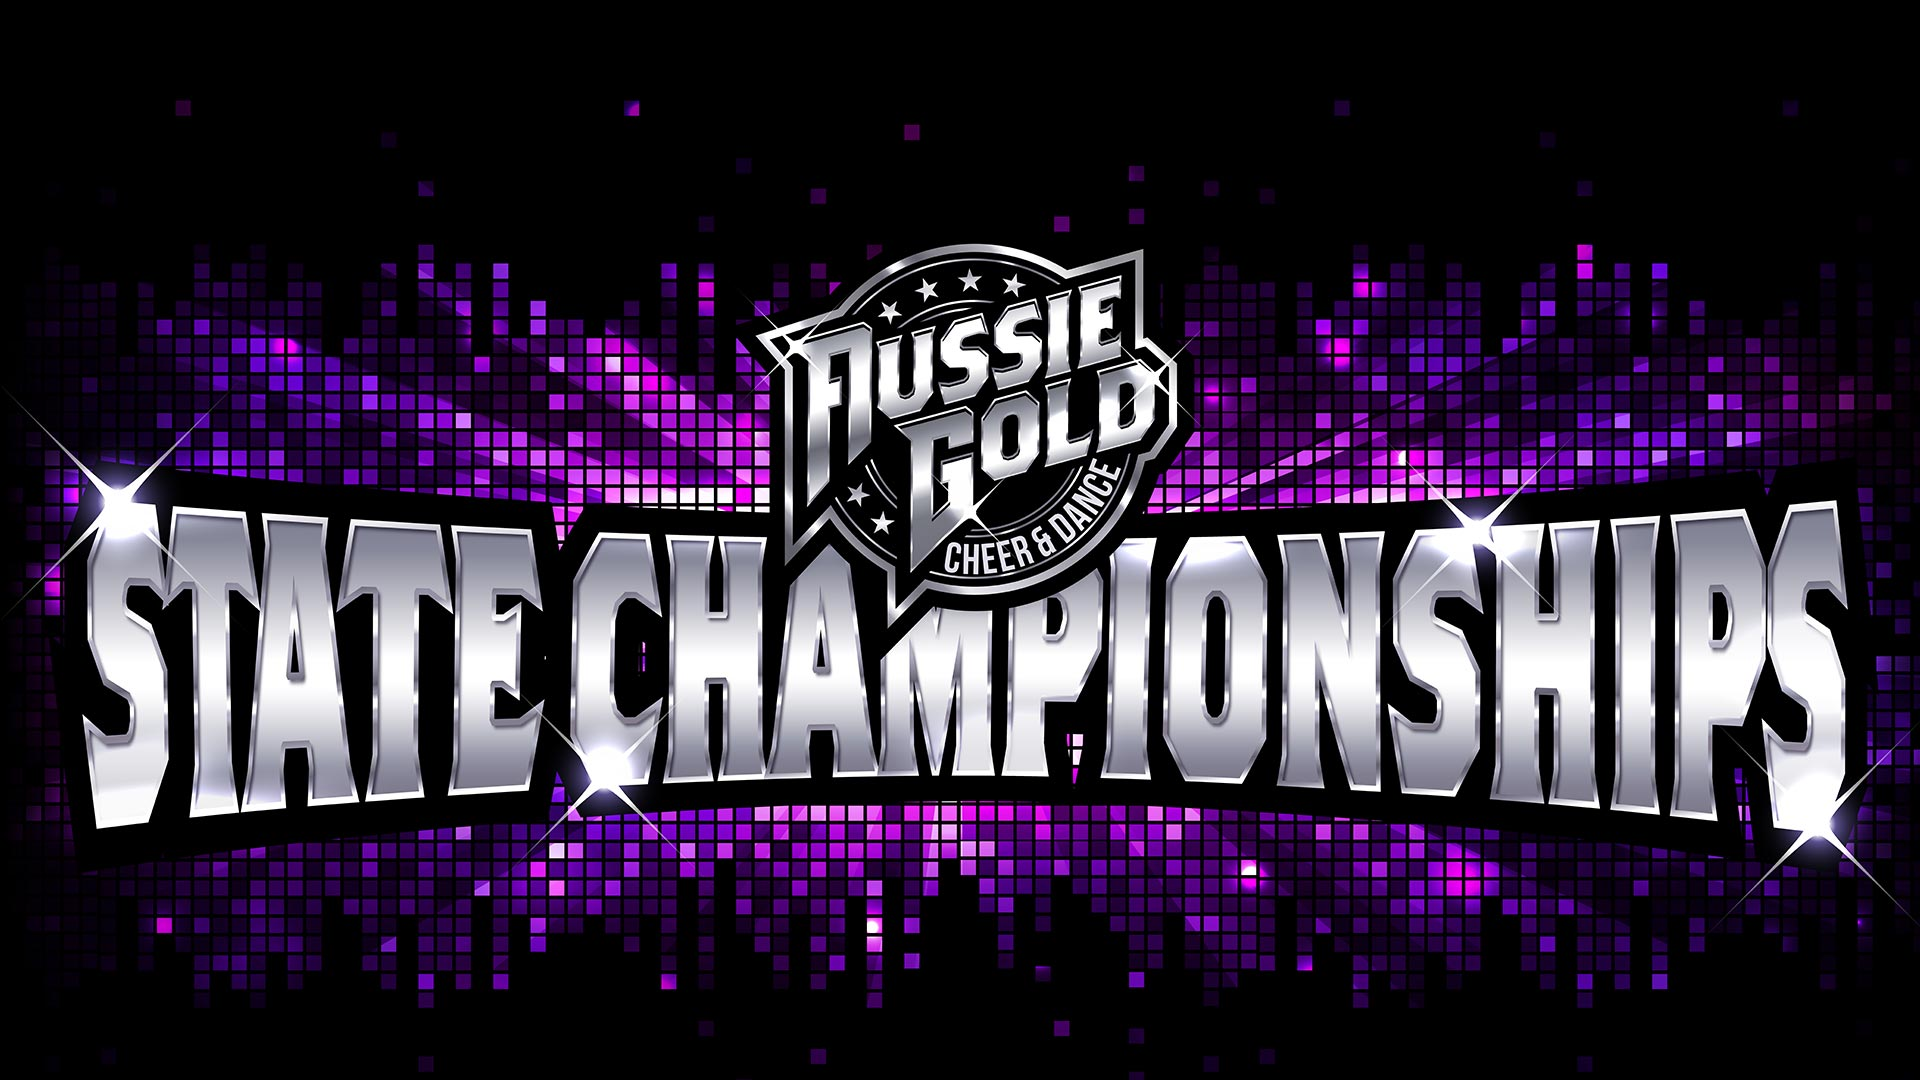 Aussie Gold State Championships – VIC